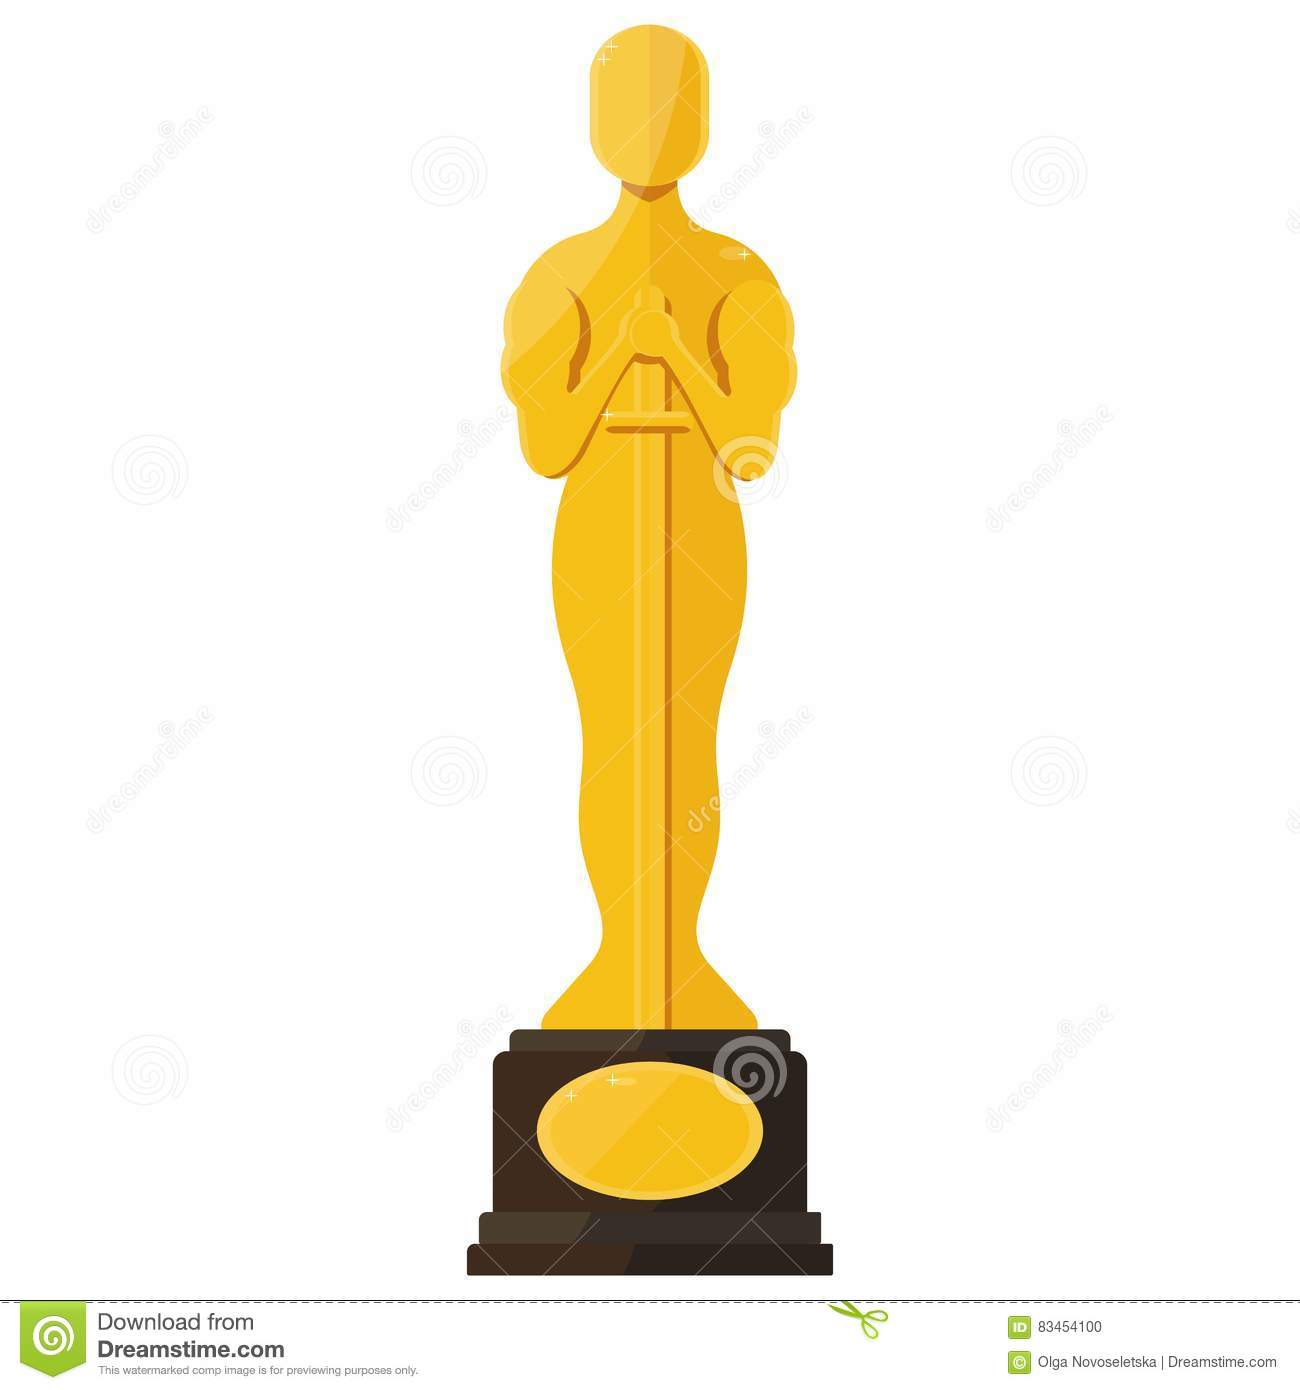 Oscar film festival award stock vector. Image of gold ...